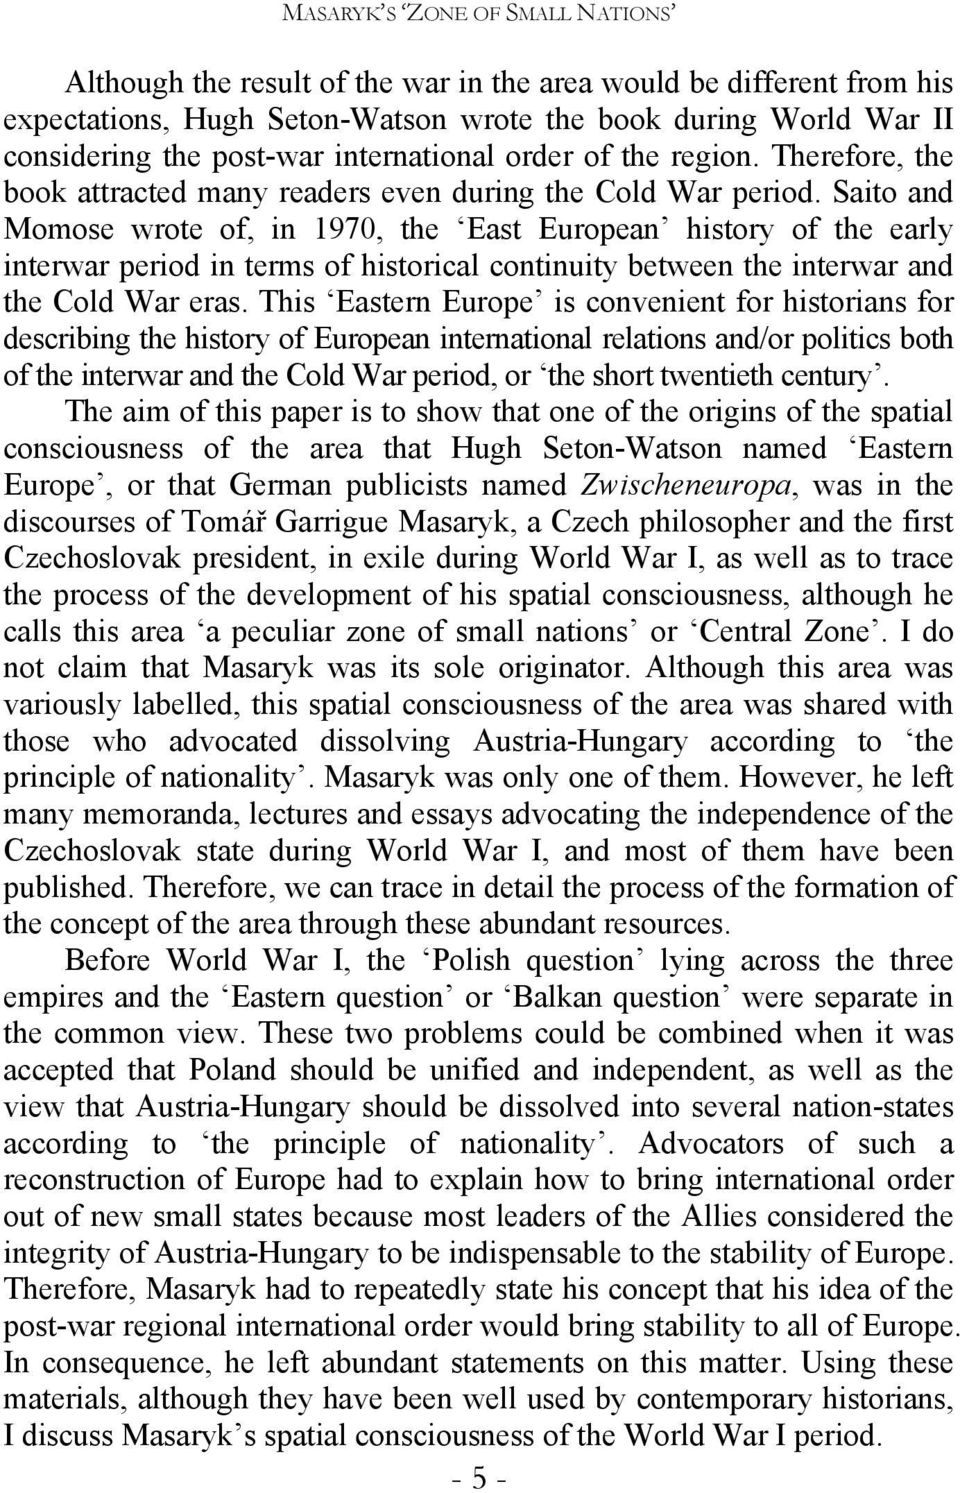 Saito and Momose wrote of, in 1970, the East European history of the early interwar period in terms of historical continuity between the interwar and the Cold War eras.